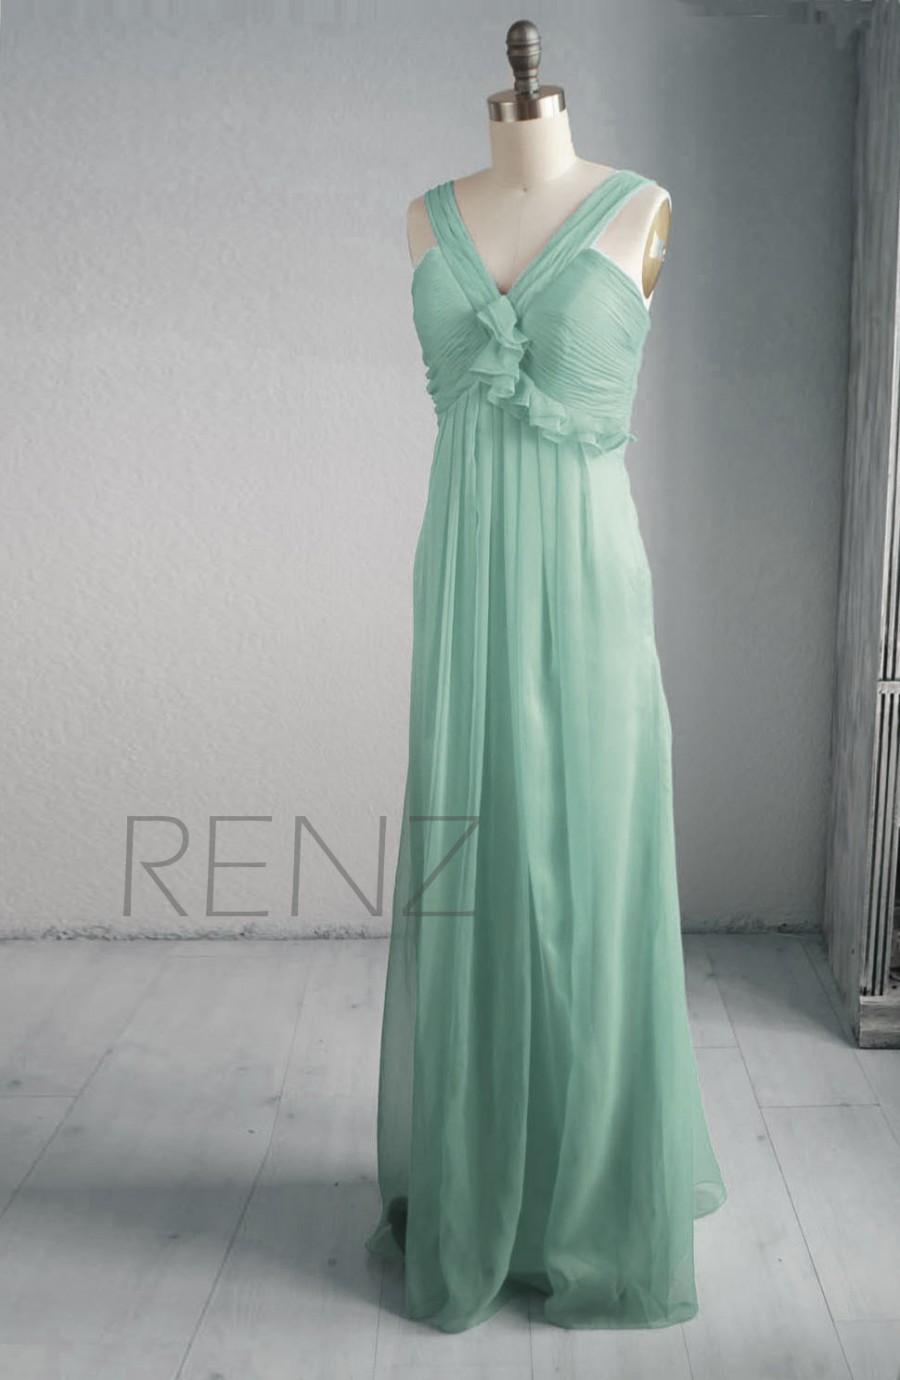 Mariage - 2015 Sleeveless Dusty Shale Bridesmaid dress, Mint Wedding dress, Long Chiffon Party dress, Formal dress, Prom dress floor length (B056)